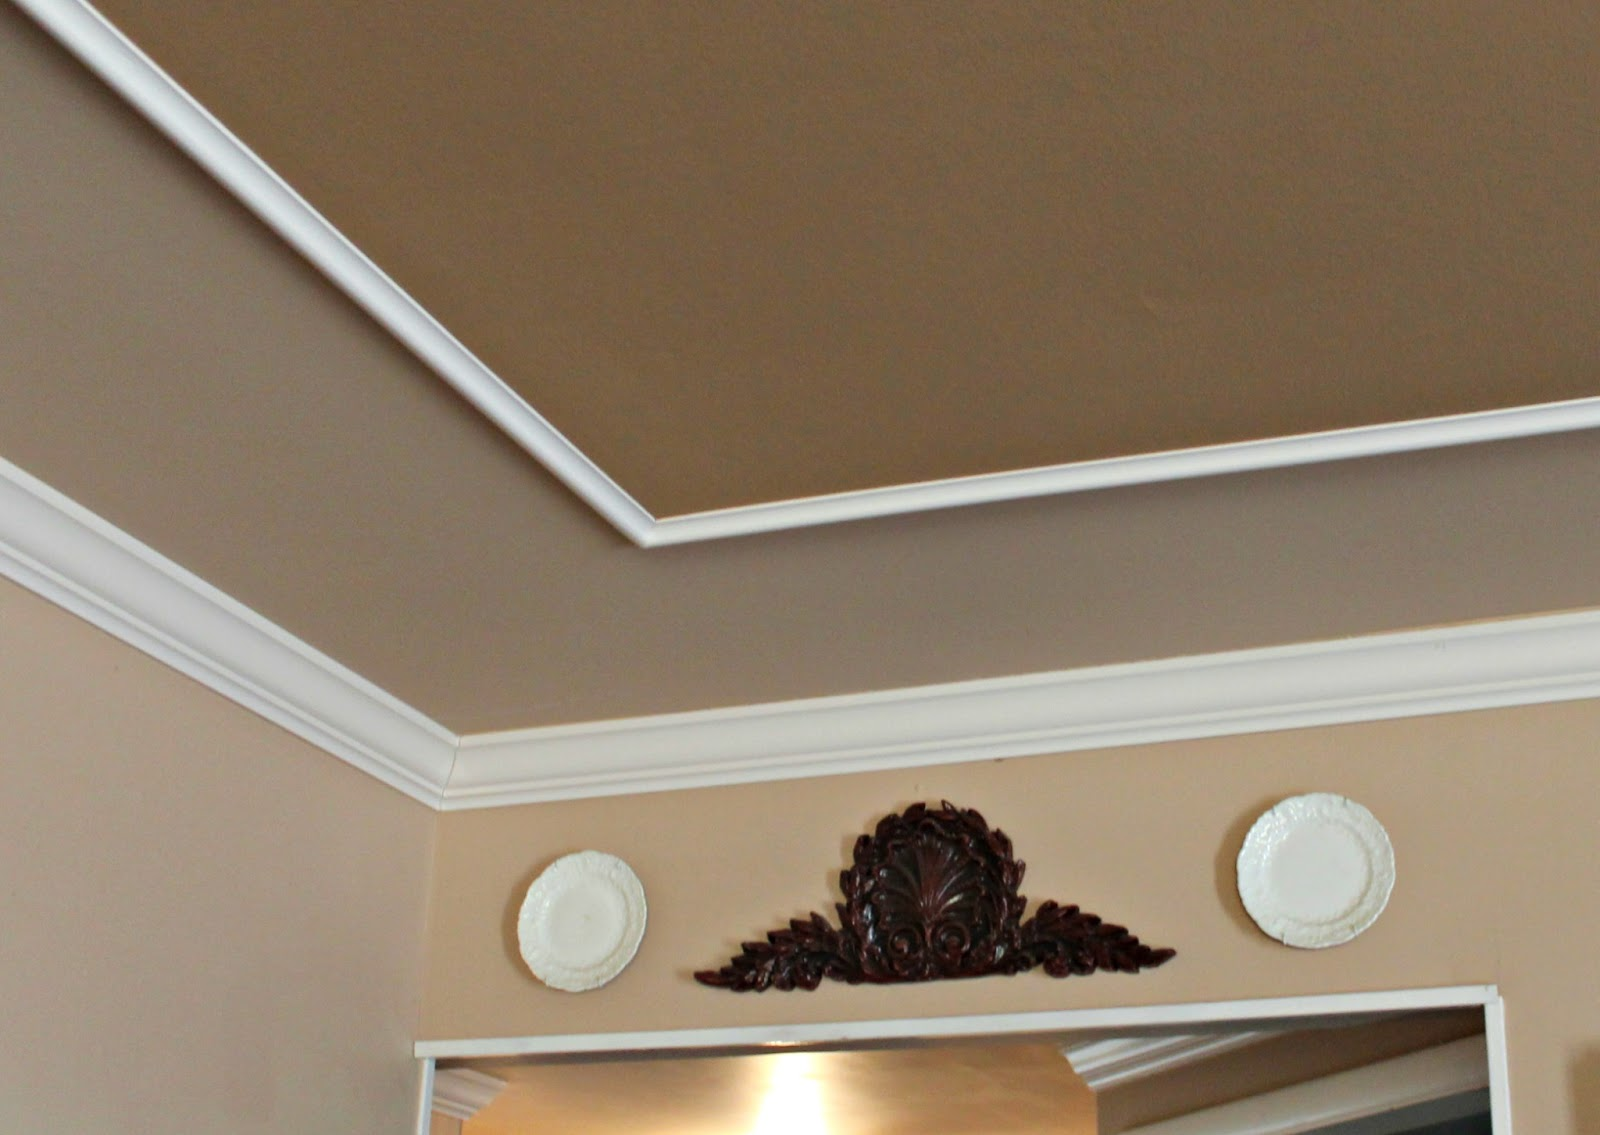 20 North Ora: Molding and Script Trim